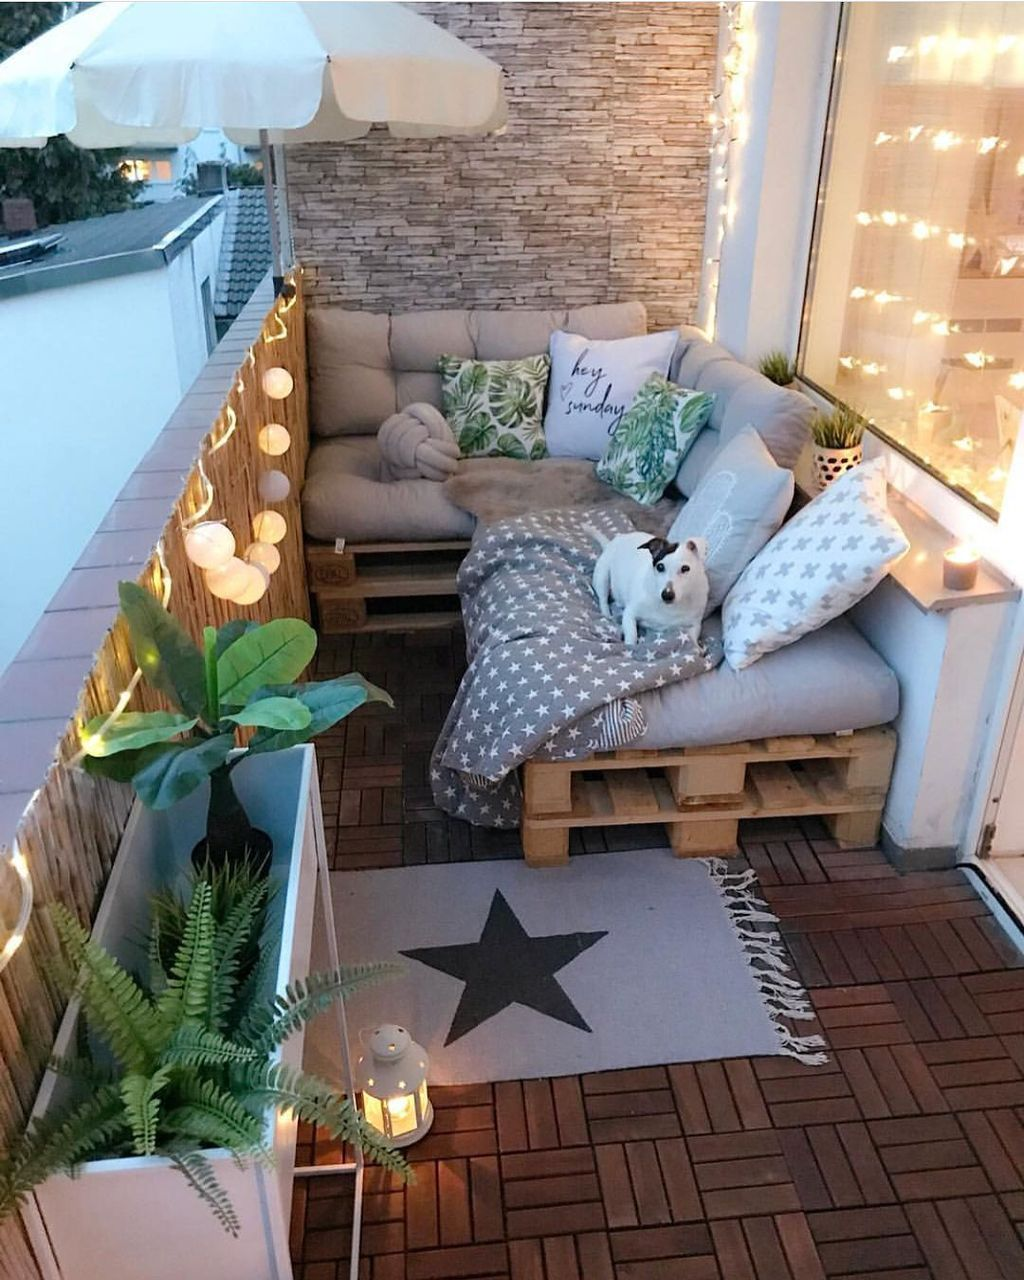 36 Awesome Small Balcony Garden Ideas - bingefashion.com/home #balconylighting